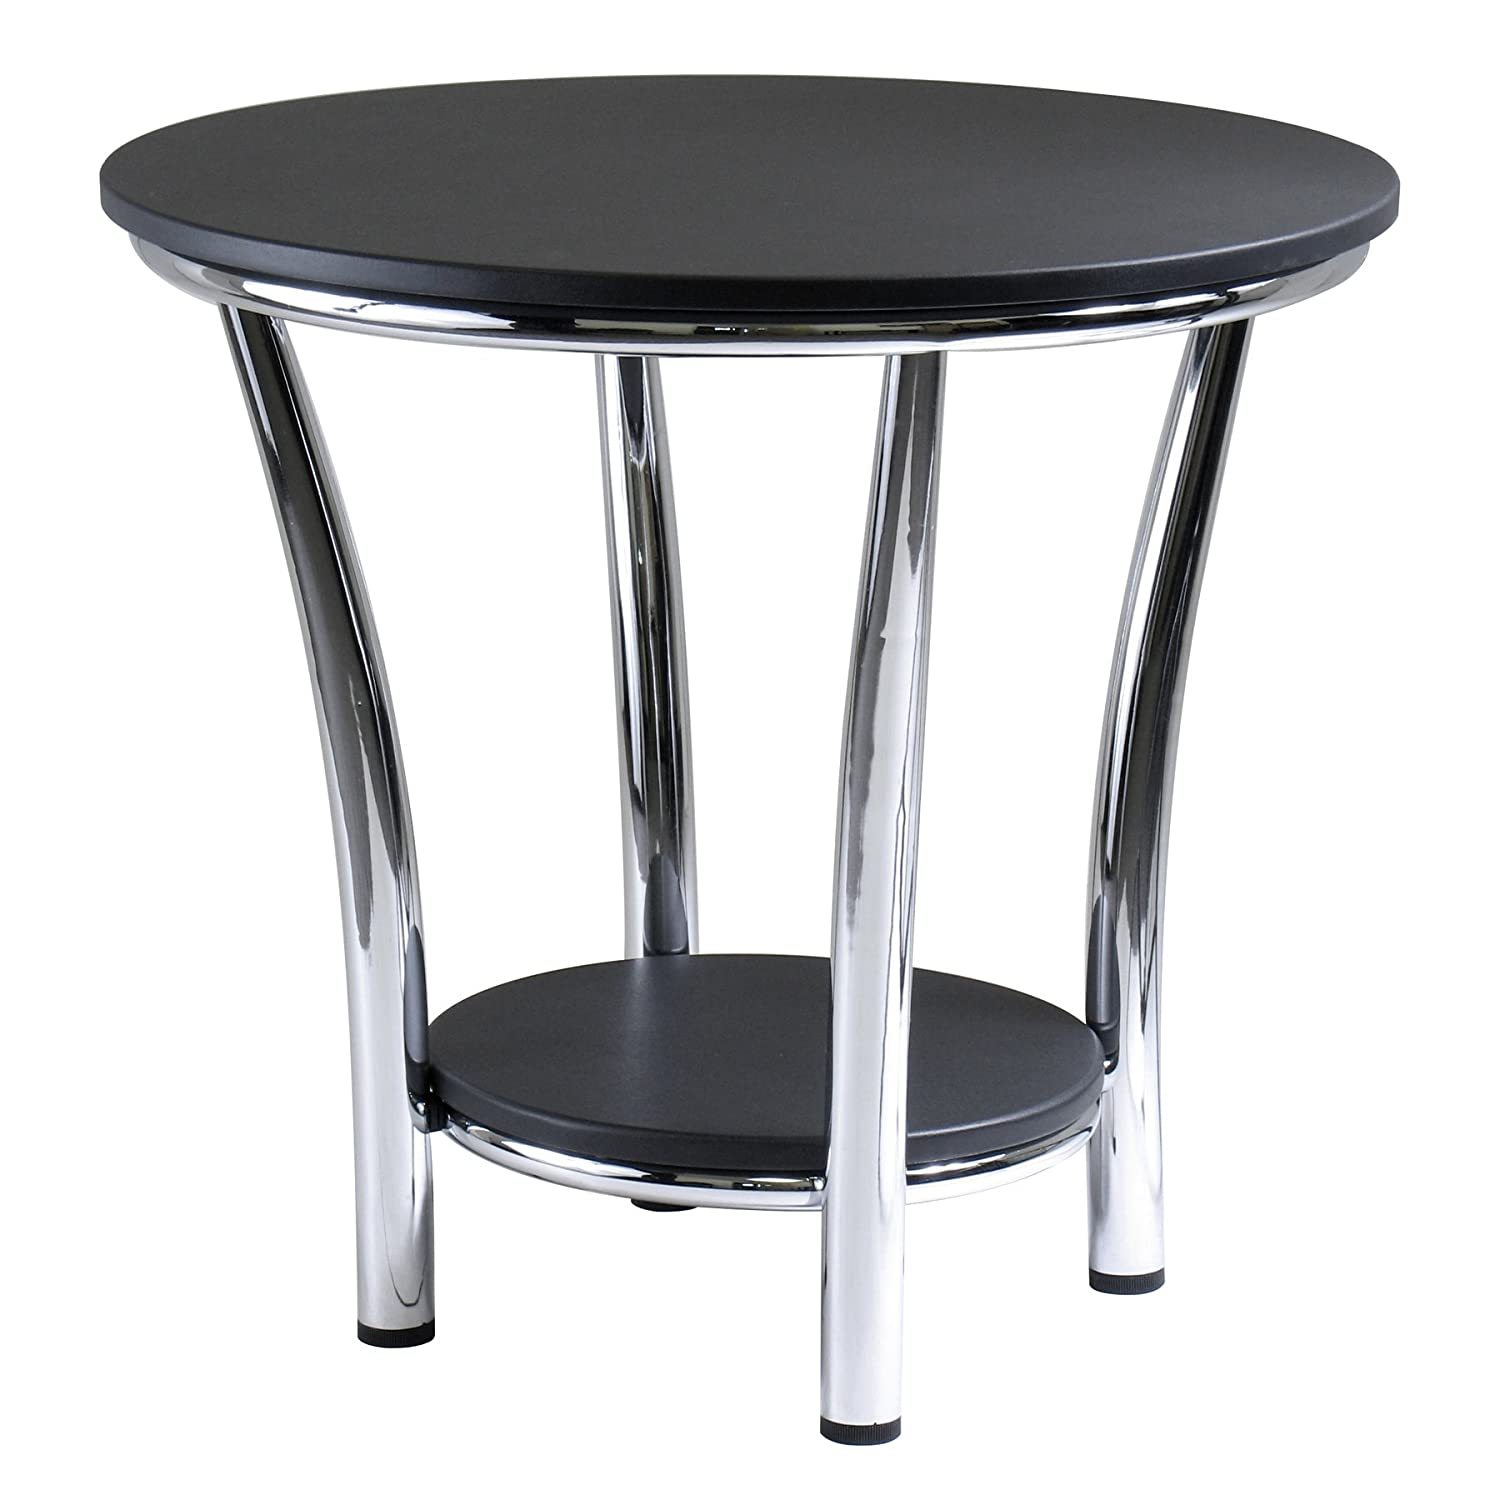 New contemporary round side end table modern style decor for Modern decorative table accents